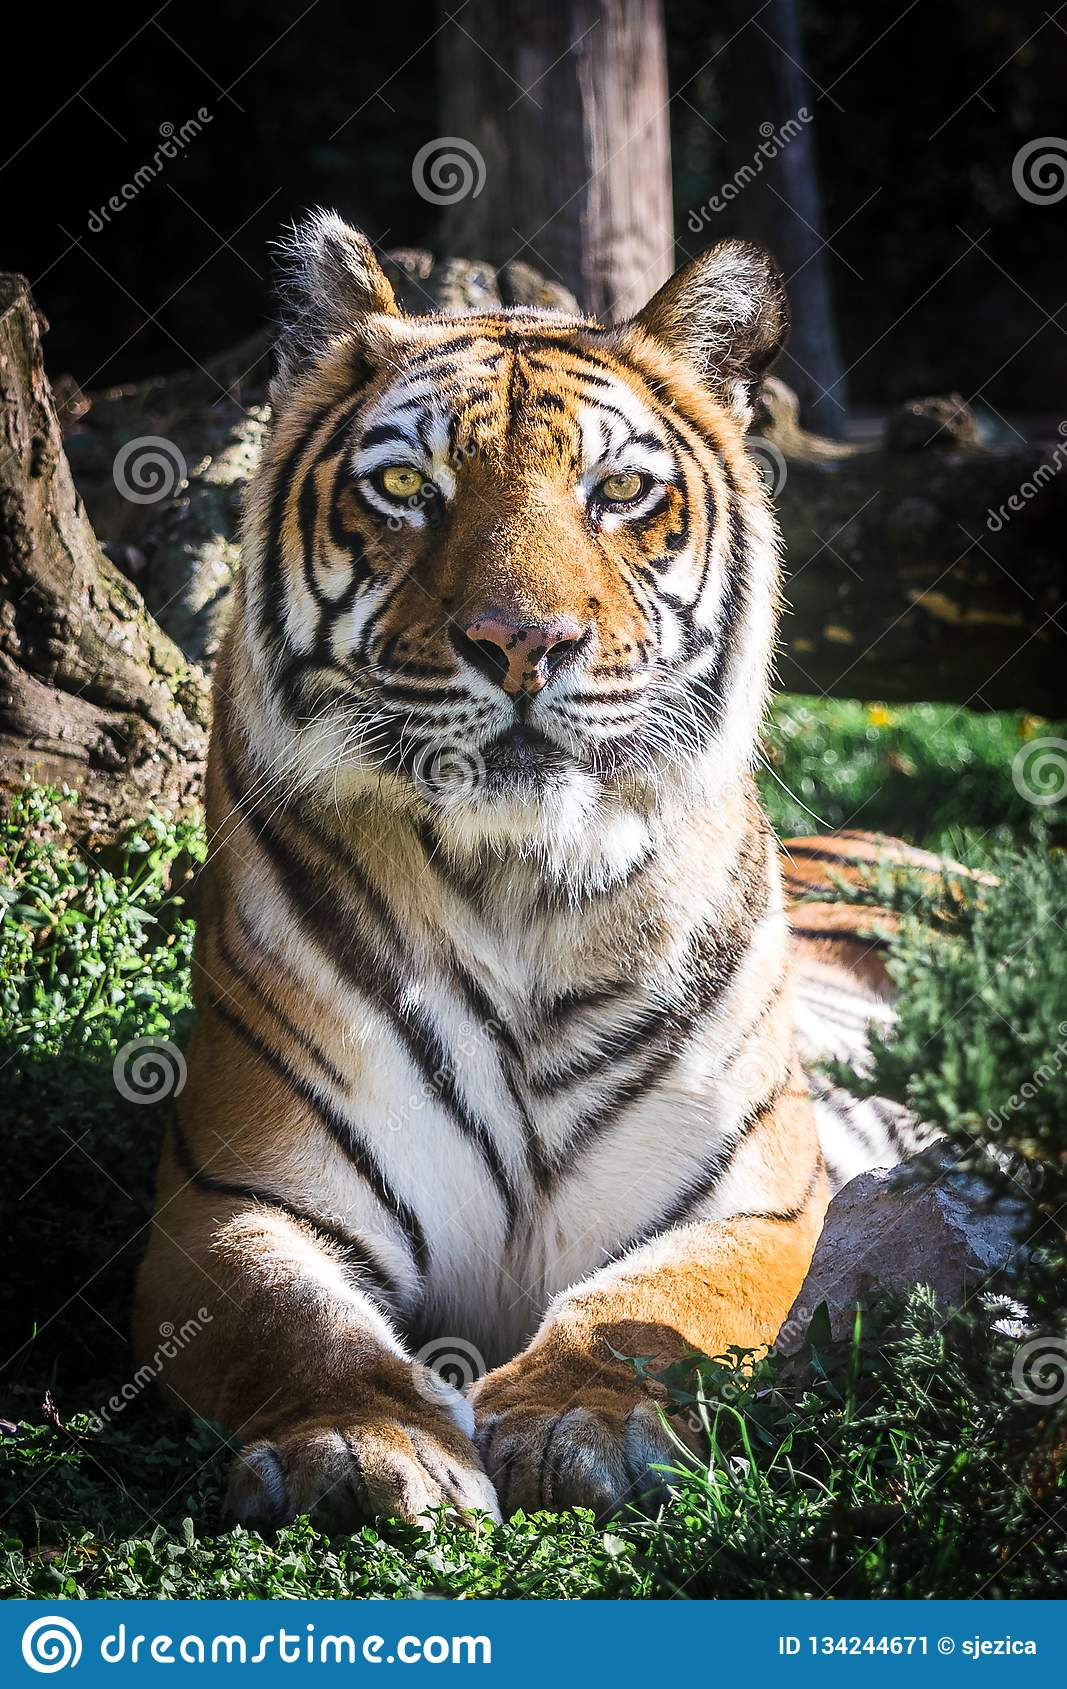 Tiger looking at camera. Portrait. Vertical.